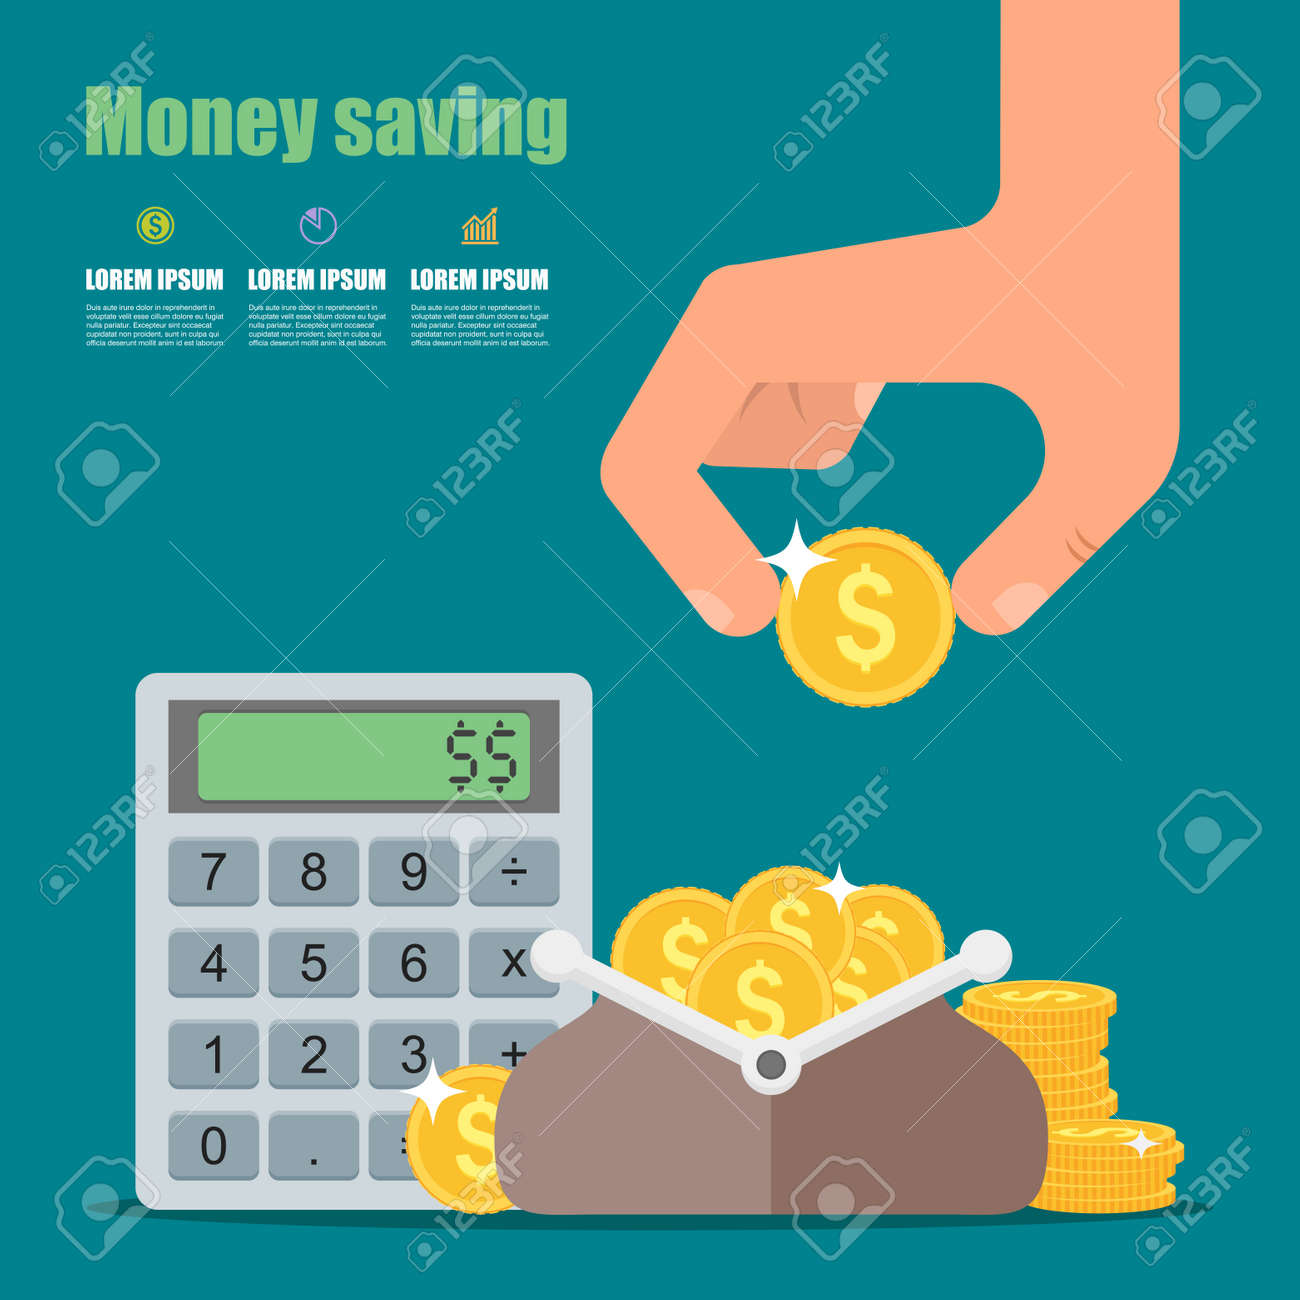 Money saving concept. Vector illustration in flat style design. Wallet full of coins, calculator and hand with coin. Finance symbols and icons. - 49157558